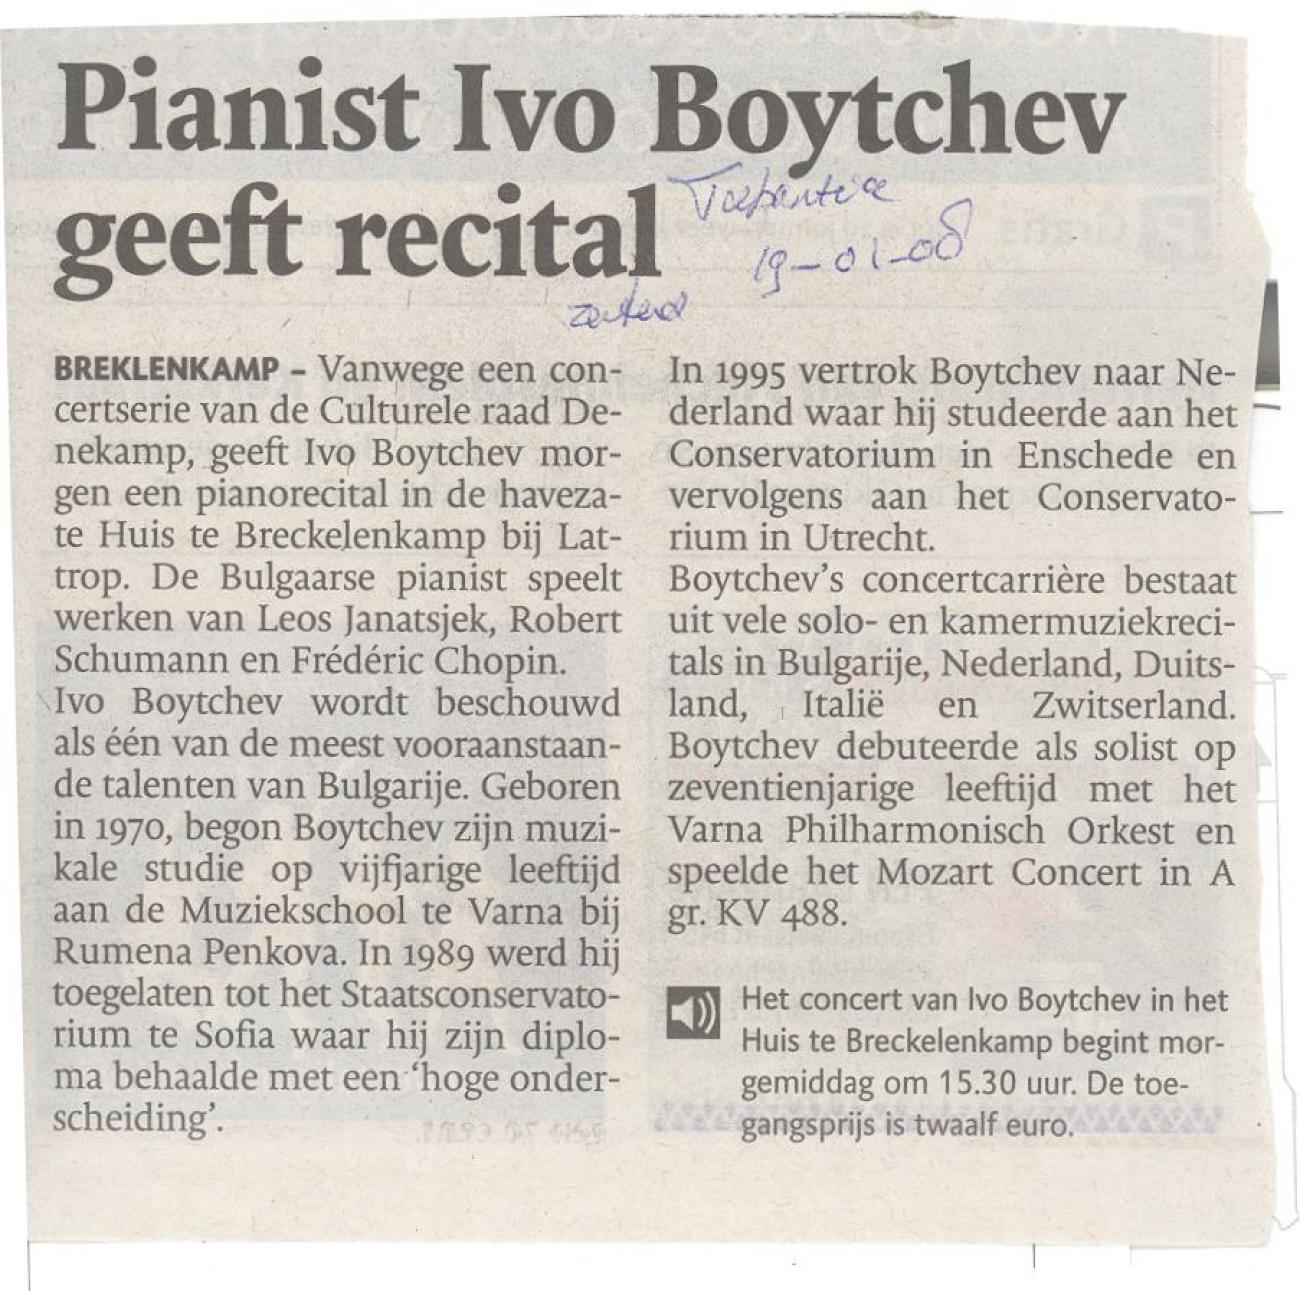 Pianist Ivo Boytchev geeft recital